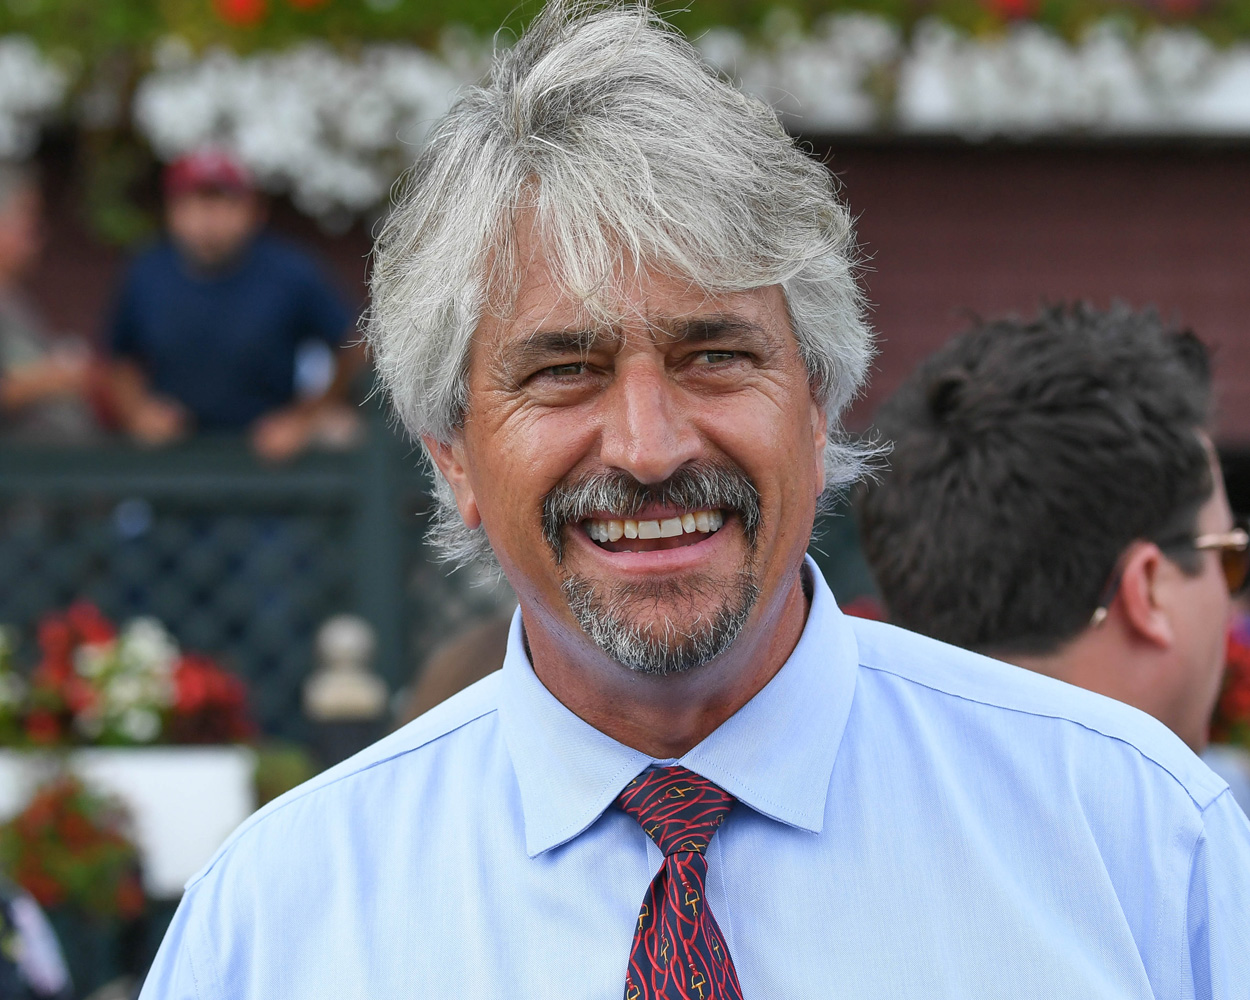 Steve Asmussen after winning the 2019 Hopeful Stakes with Basin at Saratoga Race Course (Bob Mayberger)